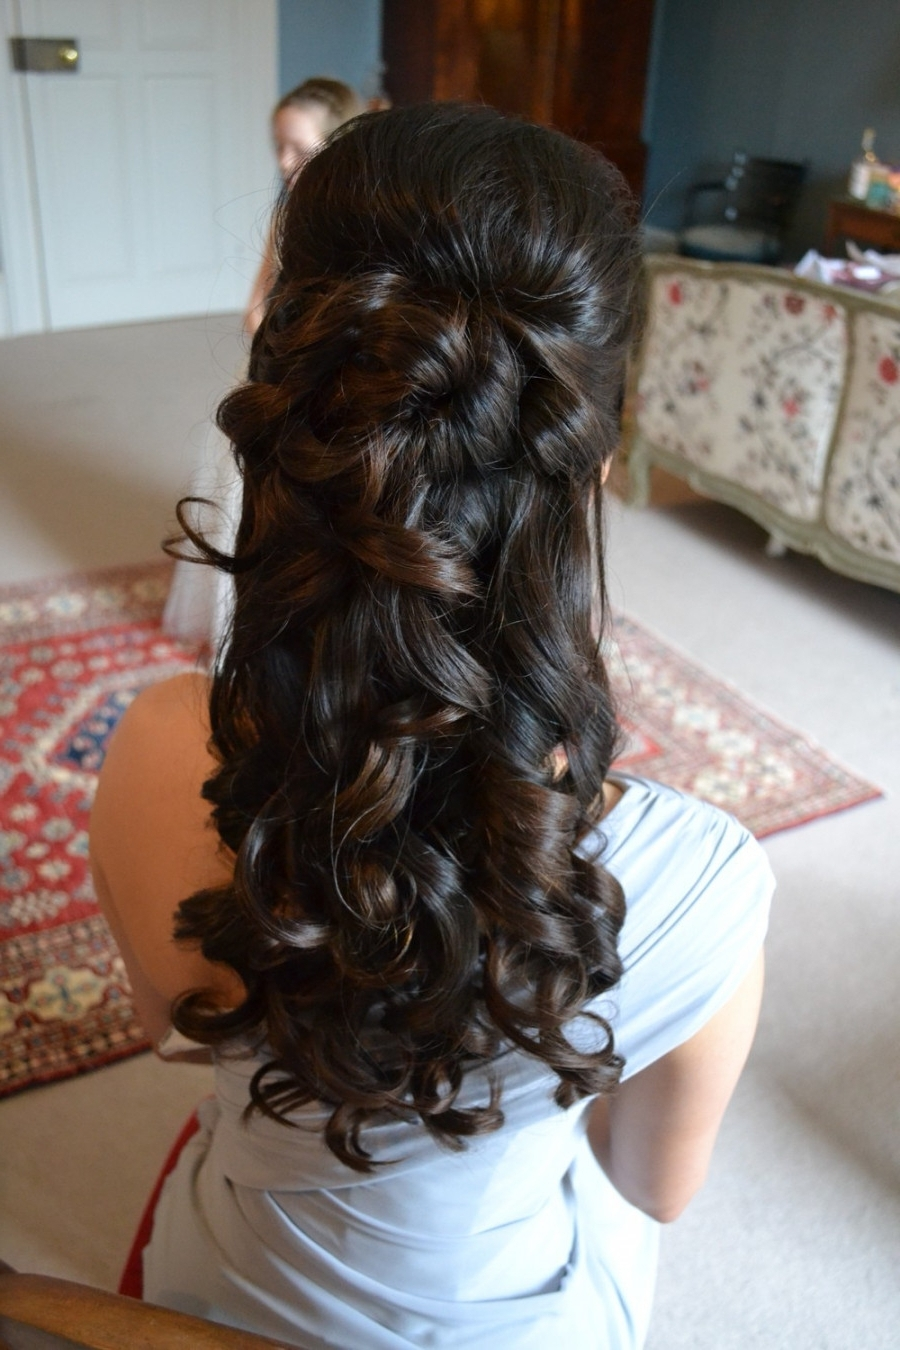 Updo Hairstyles For Sweet 16 Regarding Updo Hairstyles For Sweet 16 (Gallery 5 of 15)